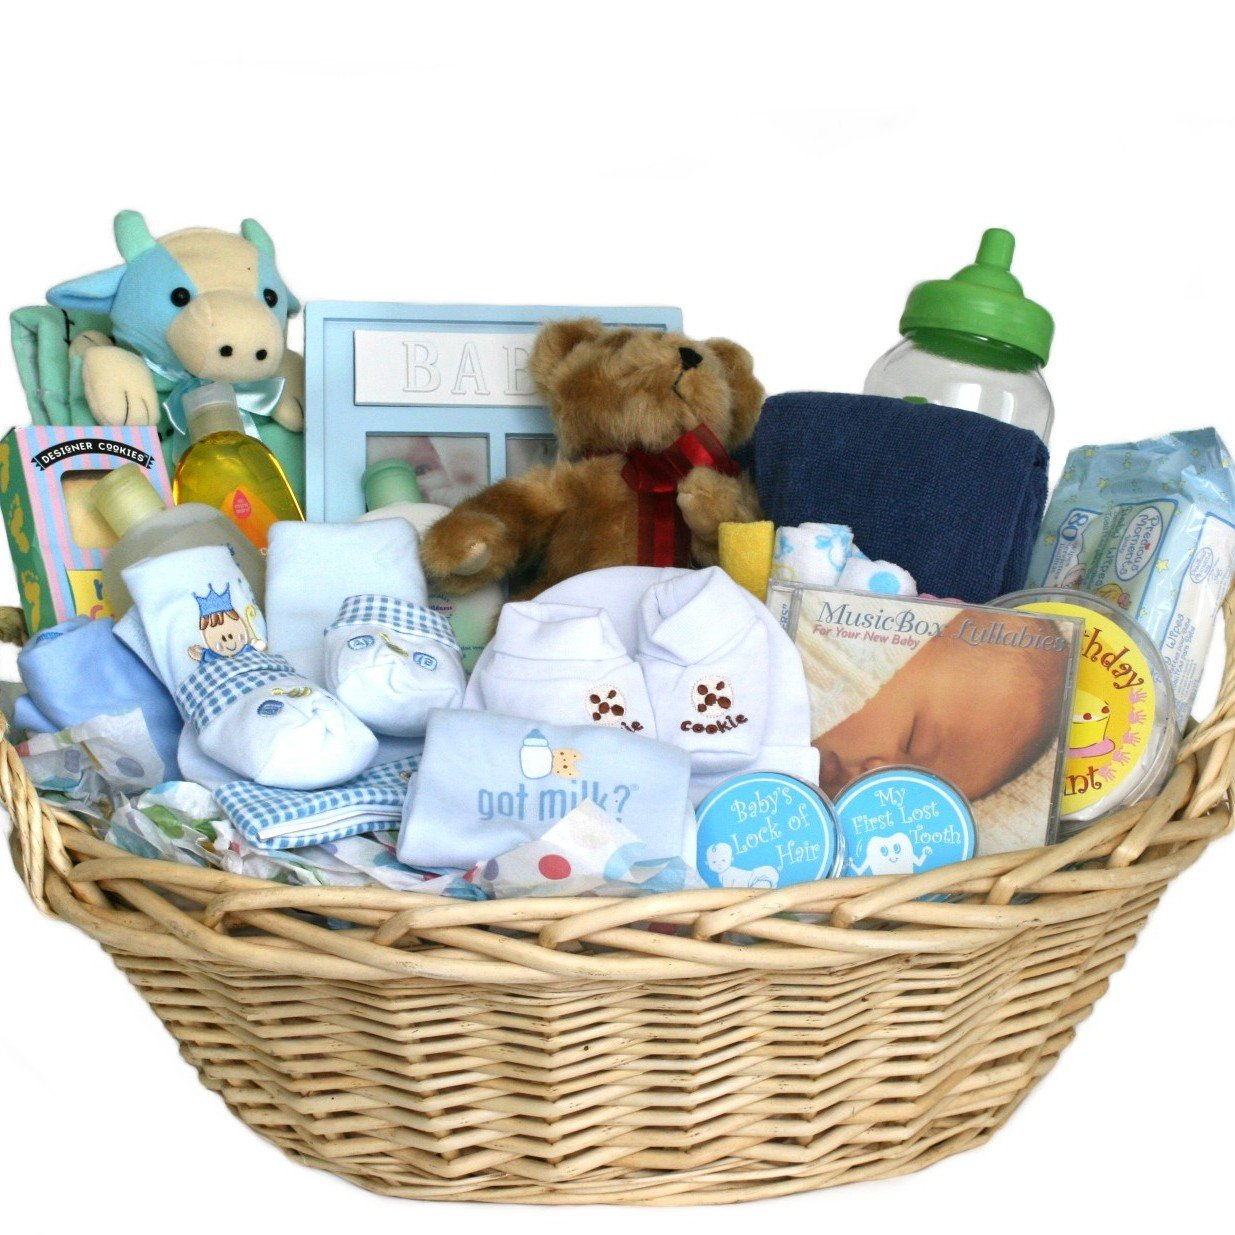 Amazon deluxe baby gift basket blue for boys great shower amazon deluxe baby gift basket blue for boys great shower gift idea for newborns baby negle Image collections